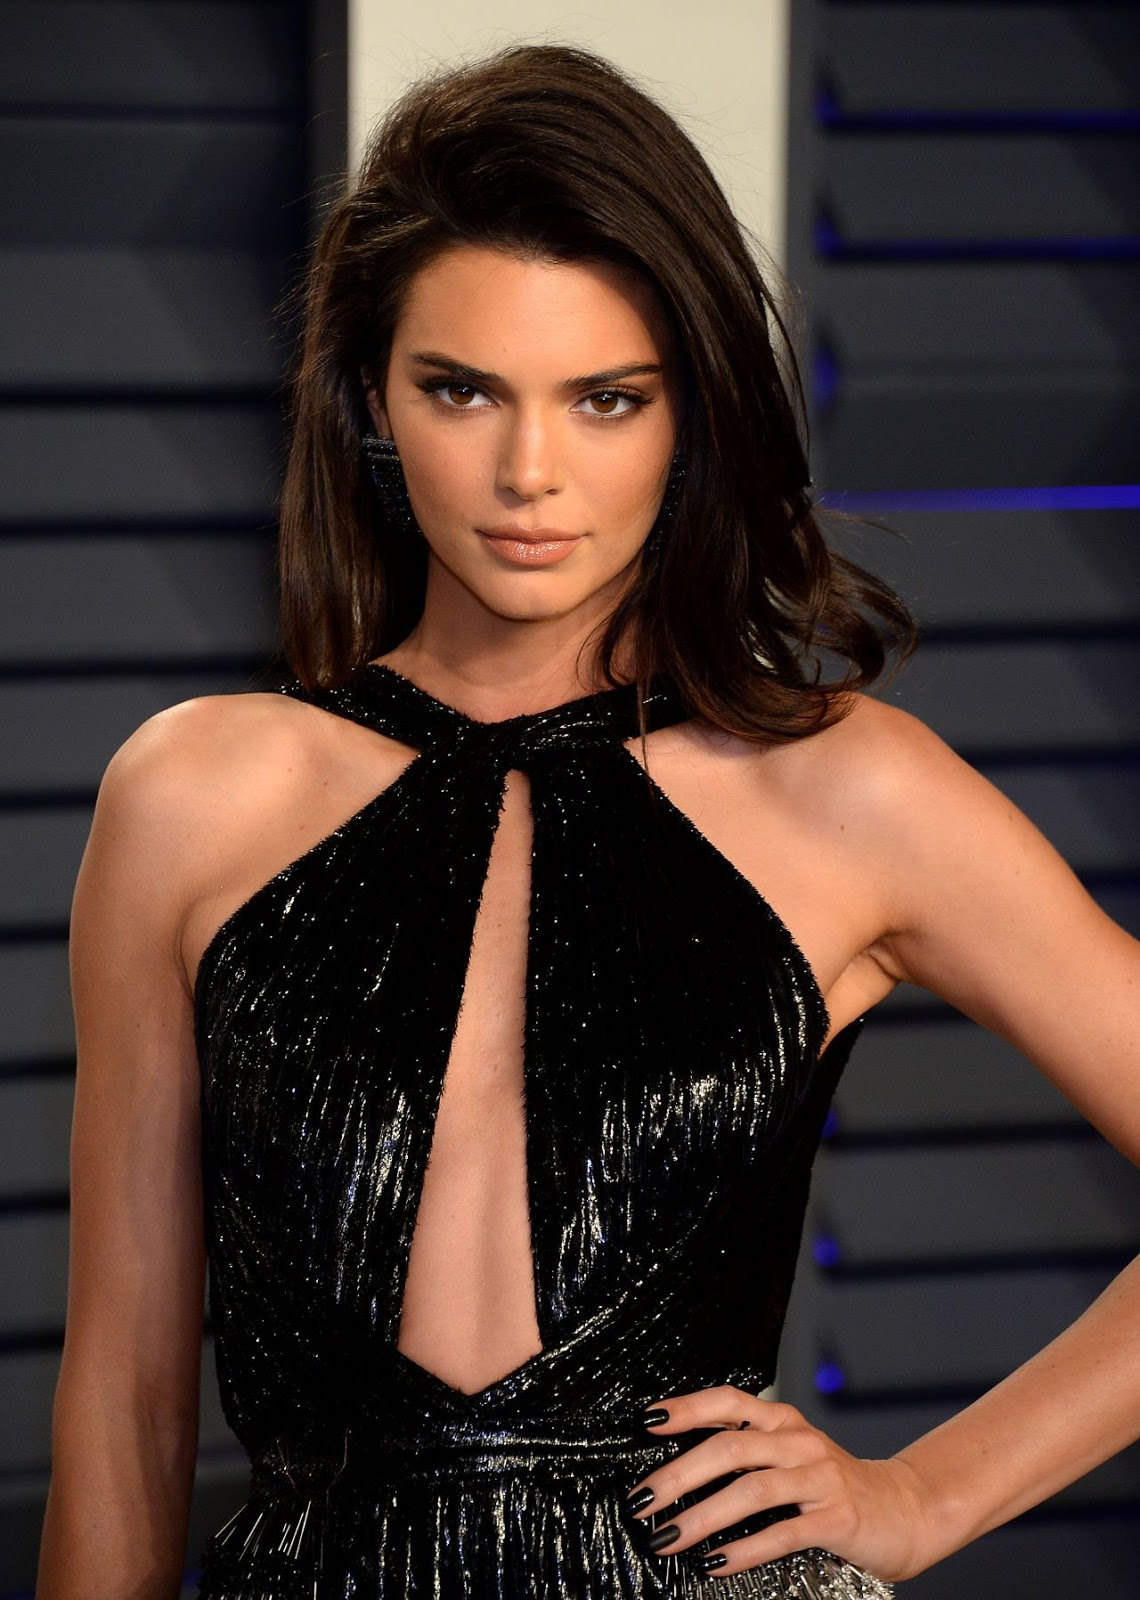 Kendall Jenner had acne at the Golden Globes and didn't care!  |Kendall Jenner